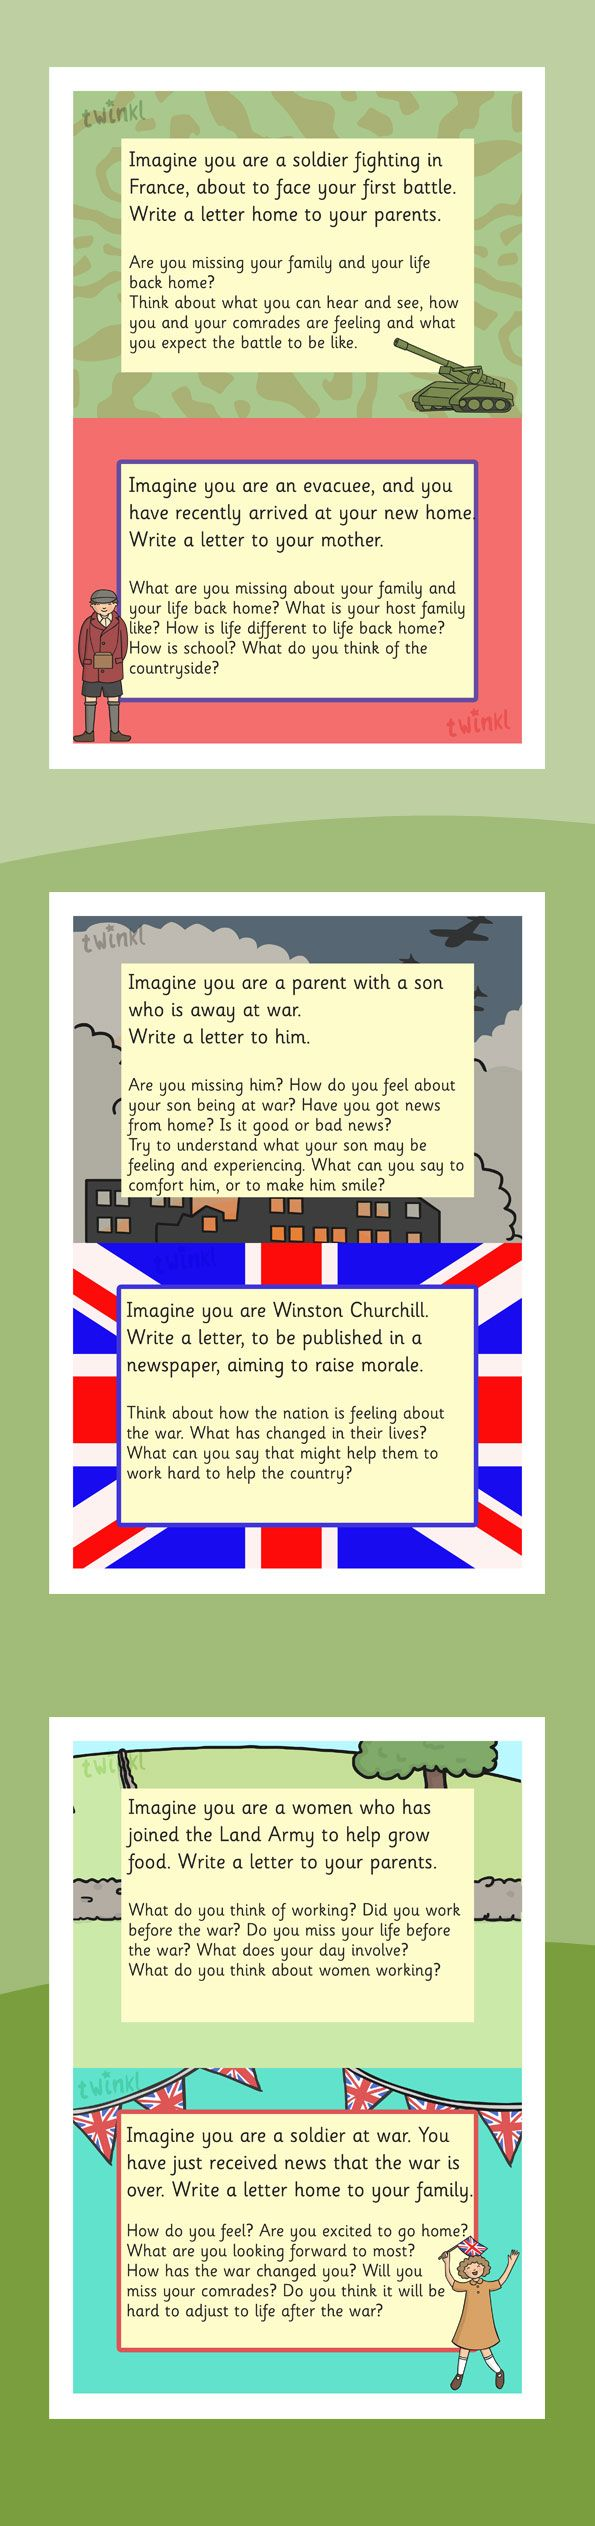 World War 2 Letter Writing Challenge Cards